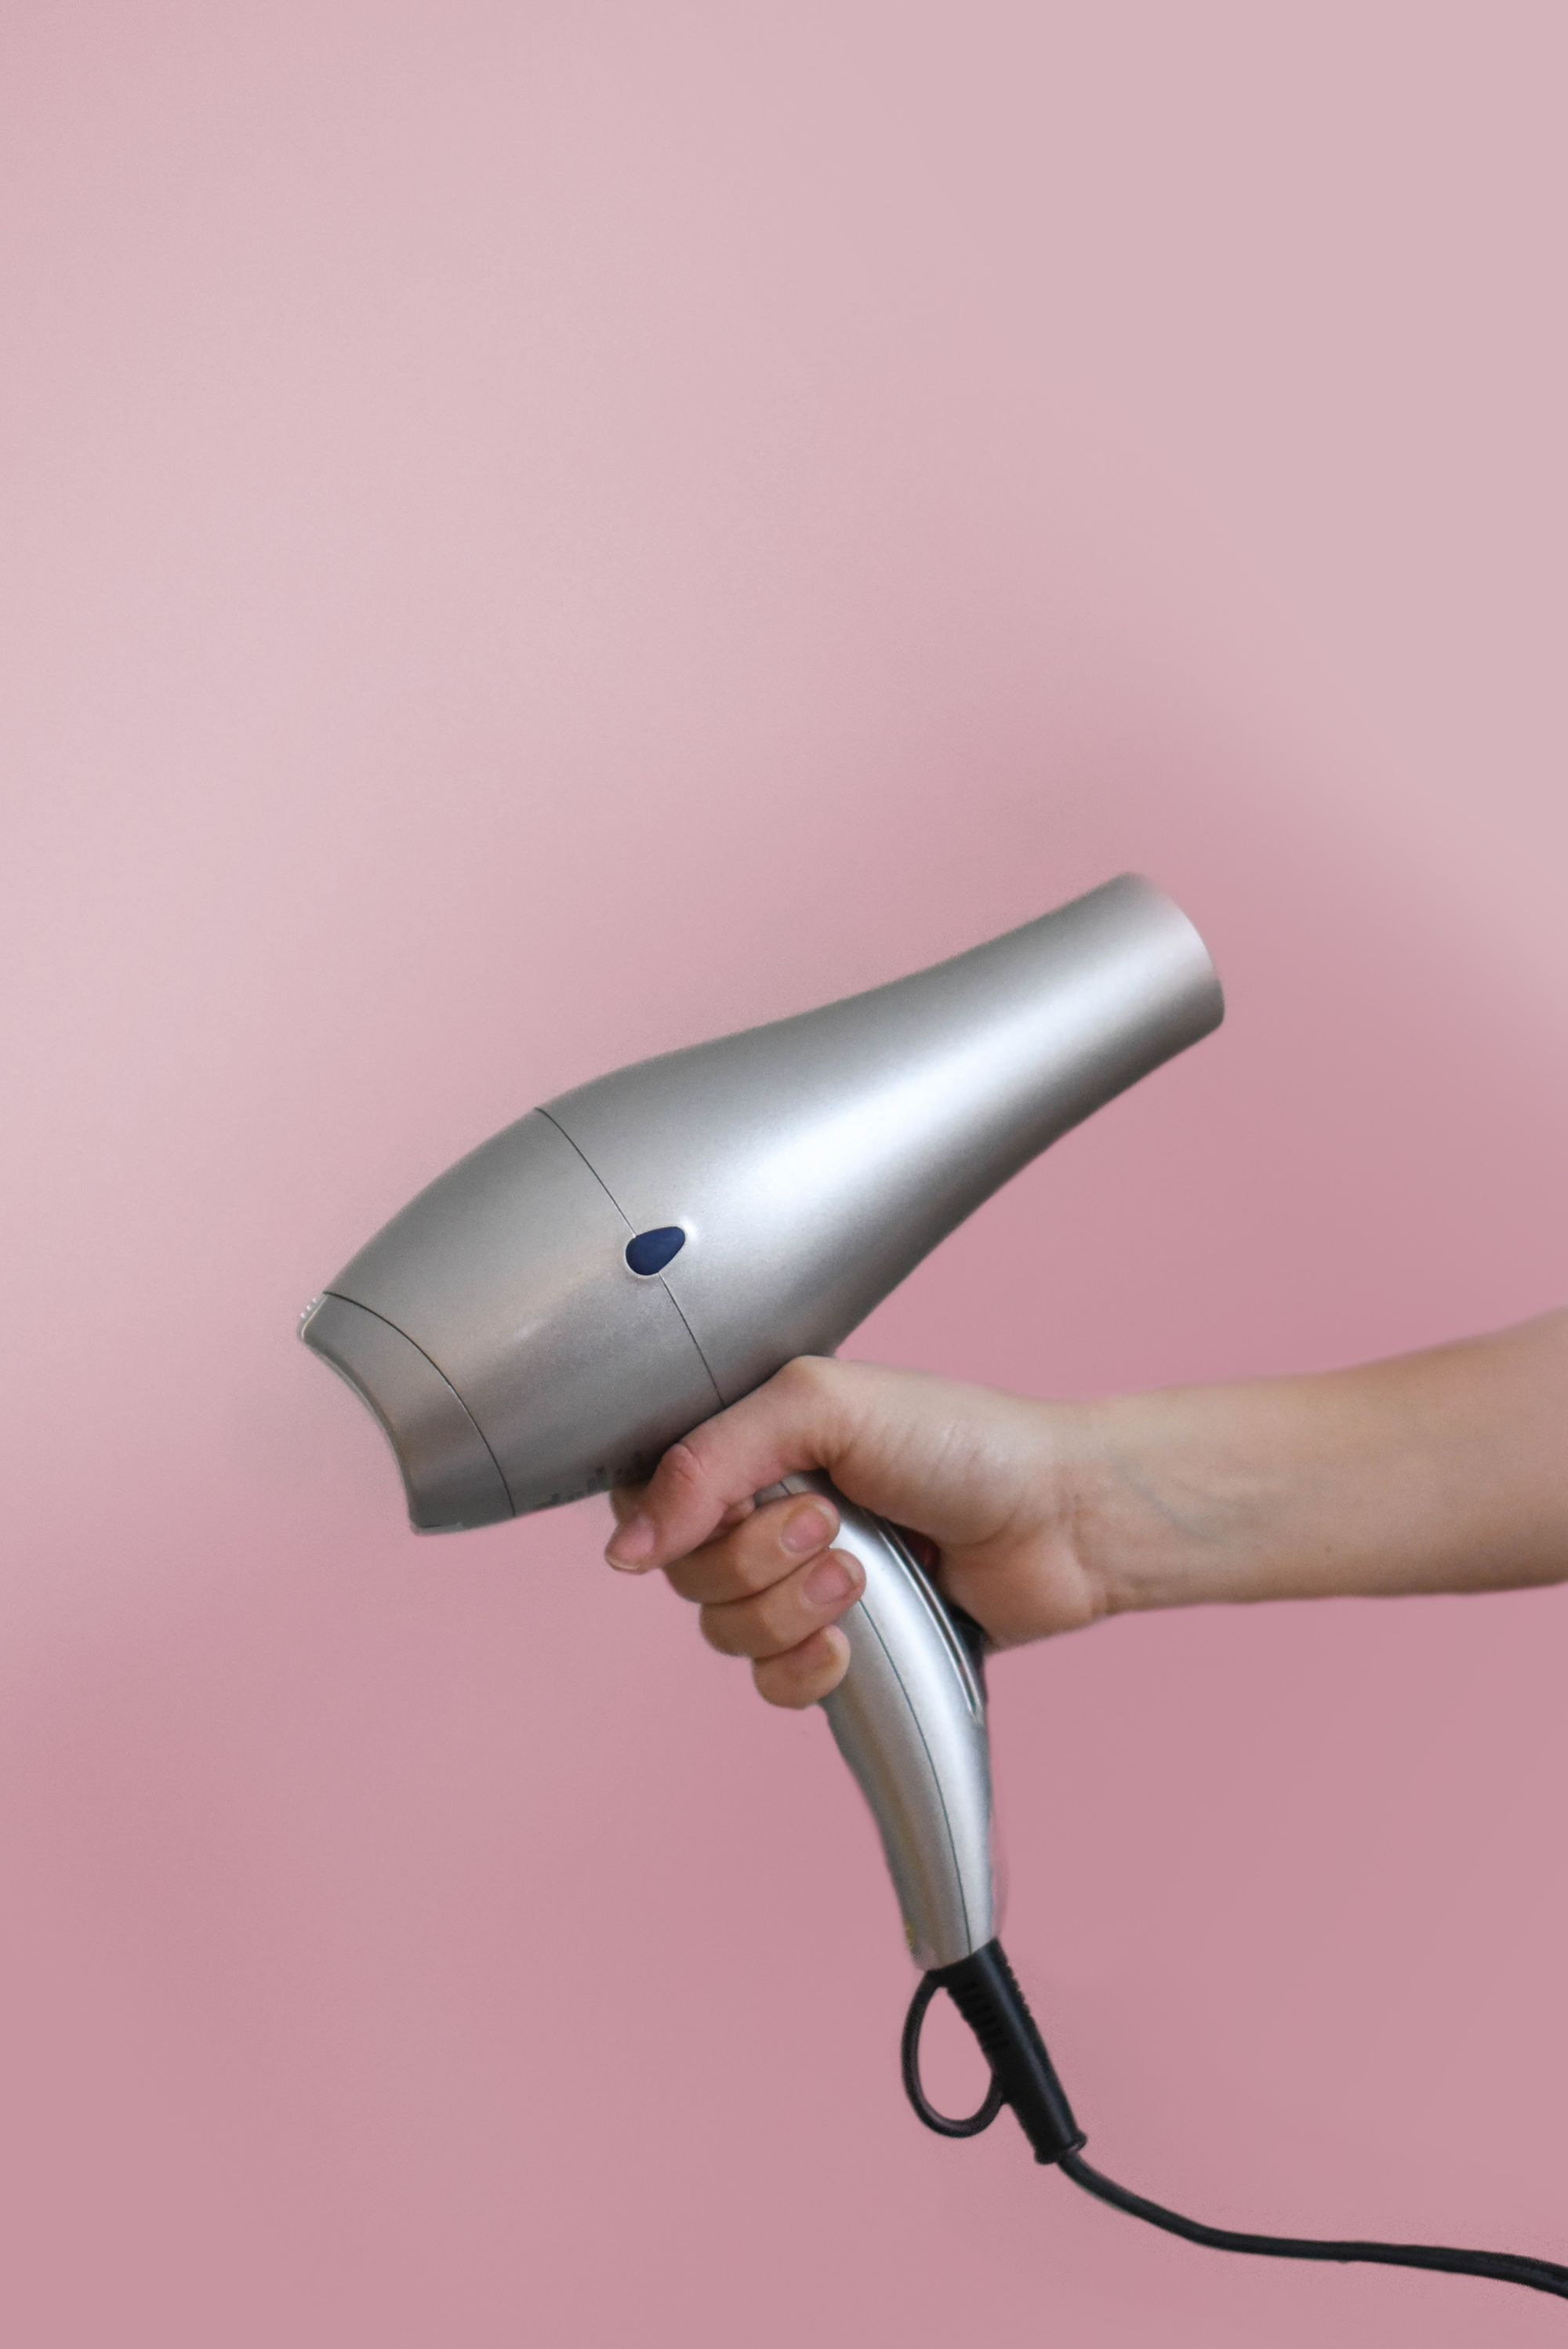 Top 5 Best Hair Dryers For All Hair Types Reviewed